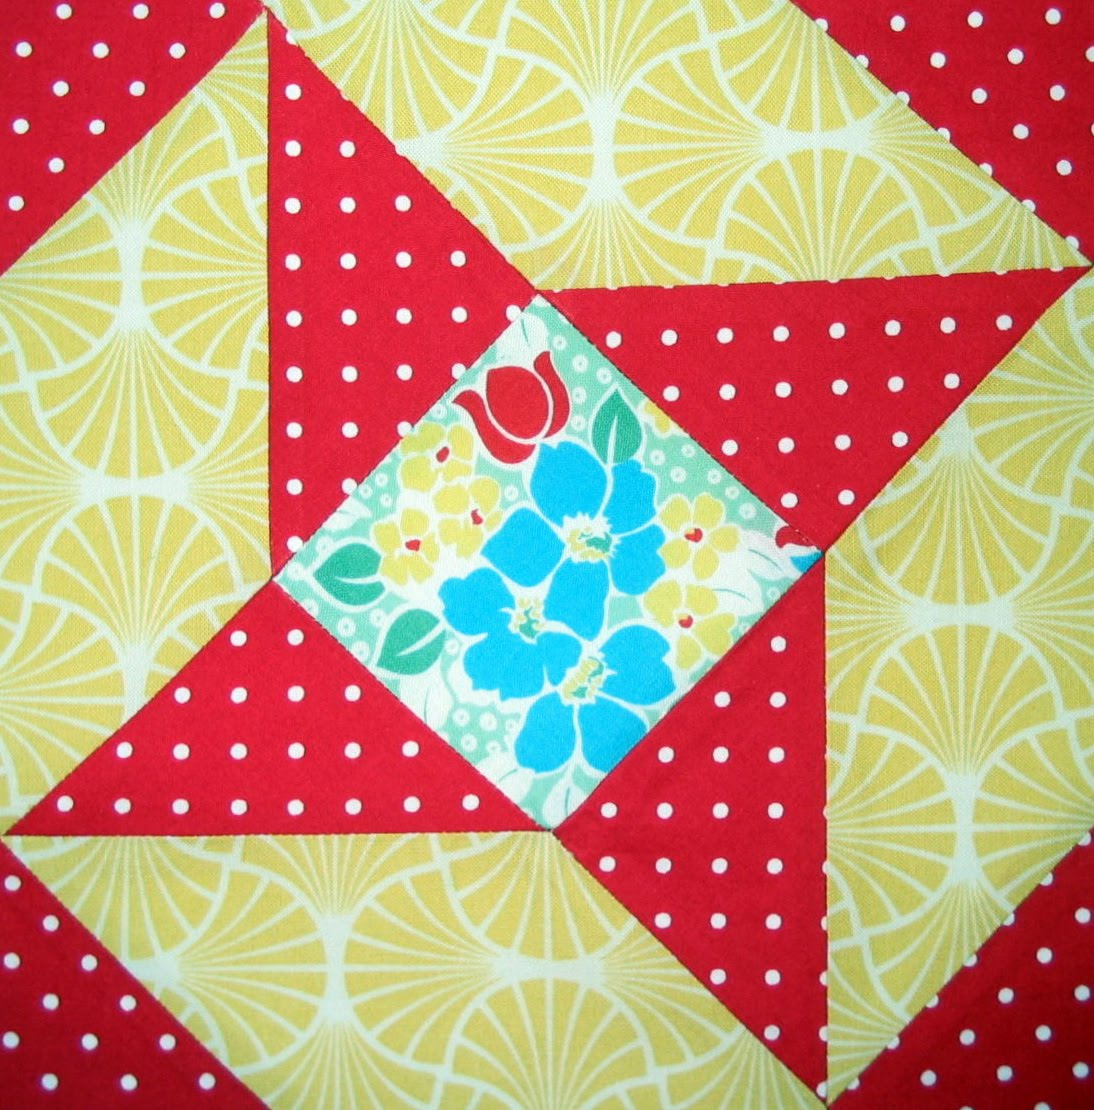 Patchwork Quilting Patterns For Beginners: Starwood Quilter: Beginner's Delight Quilt Block